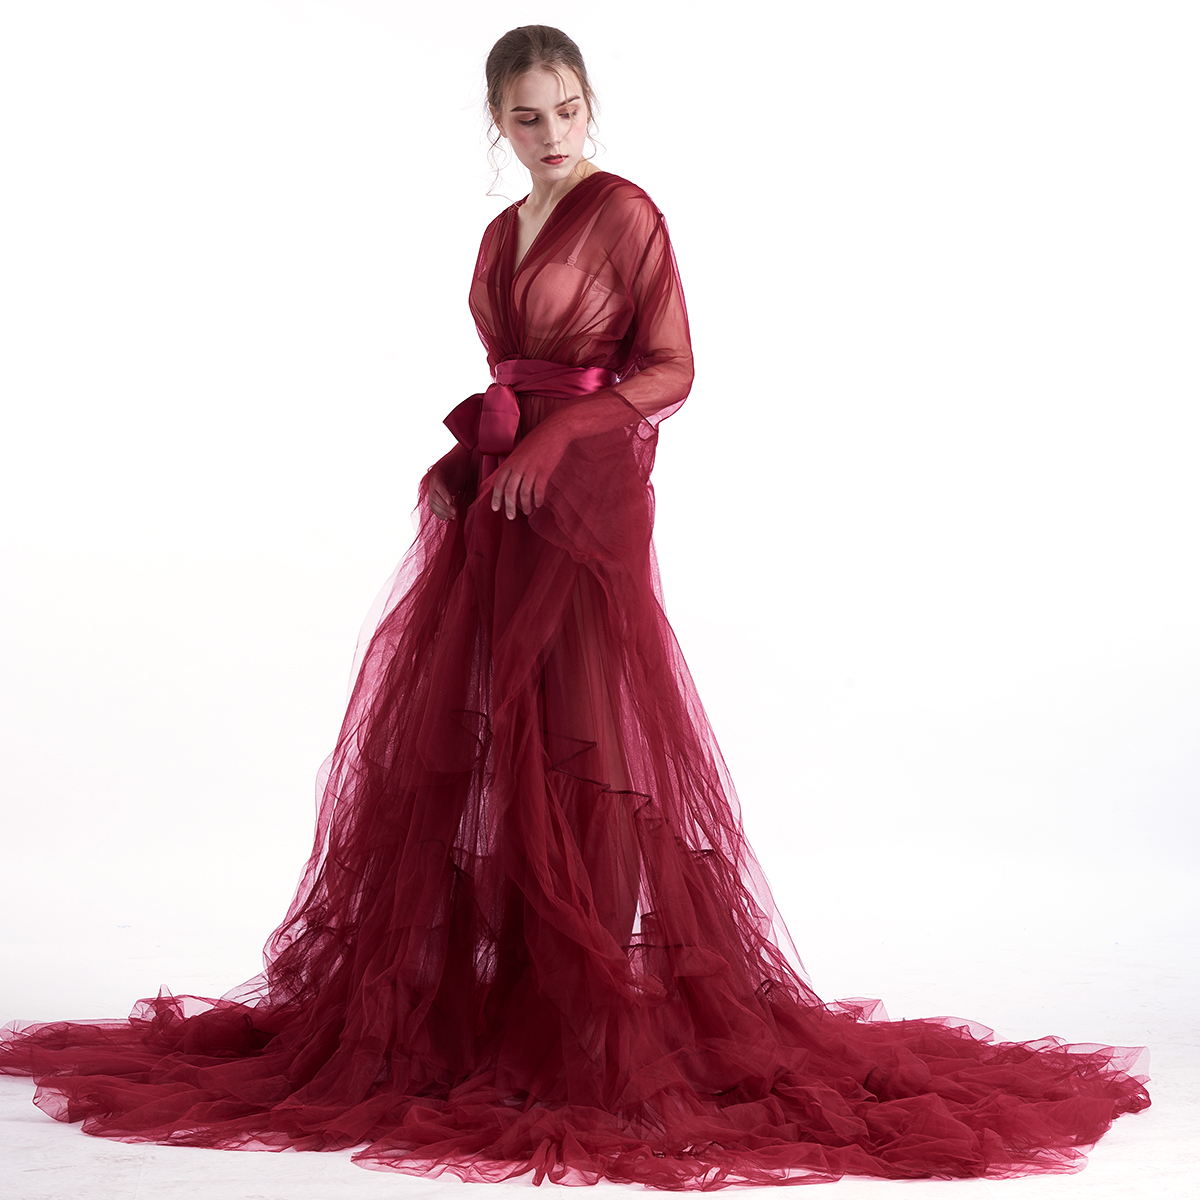 Fairy Vintage Bridal Tulle Evening Gowns Dress Halloween Costumes for Women Medieval Wedding Robe Nightgowns Outwear Elf Costume